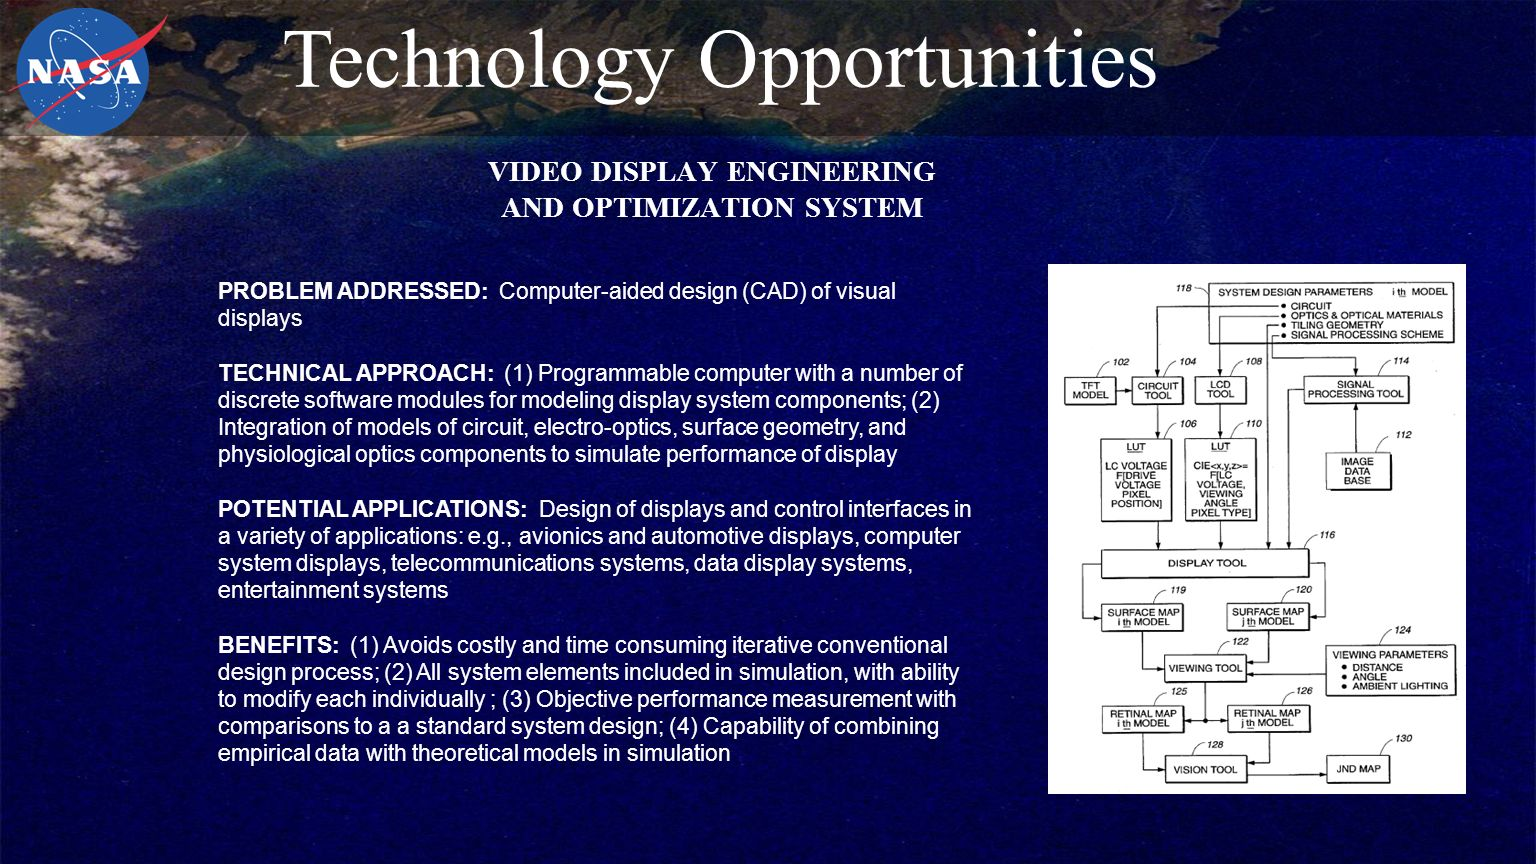 VIDEO DISPLAY ENGINEERING AND OPTIMIZATION SYSTEM PROBLEM ADDRESSED: Computer-aided design (CAD) of visual displays TECHNICAL APPROACH: (1) Programmable computer with a number of discrete software modules for modeling display system components; (2) Integration of models of circuit, electro-optics, surface geometry, and physiological optics components to simulate performance of display POTENTIAL APPLICATIONS: Design of displays and control interfaces in a variety of applications: e.g., avionics and automotive displays, computer system displays, telecommunications systems, data display systems, entertainment systems BENEFITS: (1) Avoids costly and time consuming iterative conventional design process; (2) All system elements included in simulation, with ability to modify each individually ; (3) Objective performance measurement with comparisons to a a standard system design; (4) Capability of combining empirical data with theoretical models in simulation Technology Opportunities